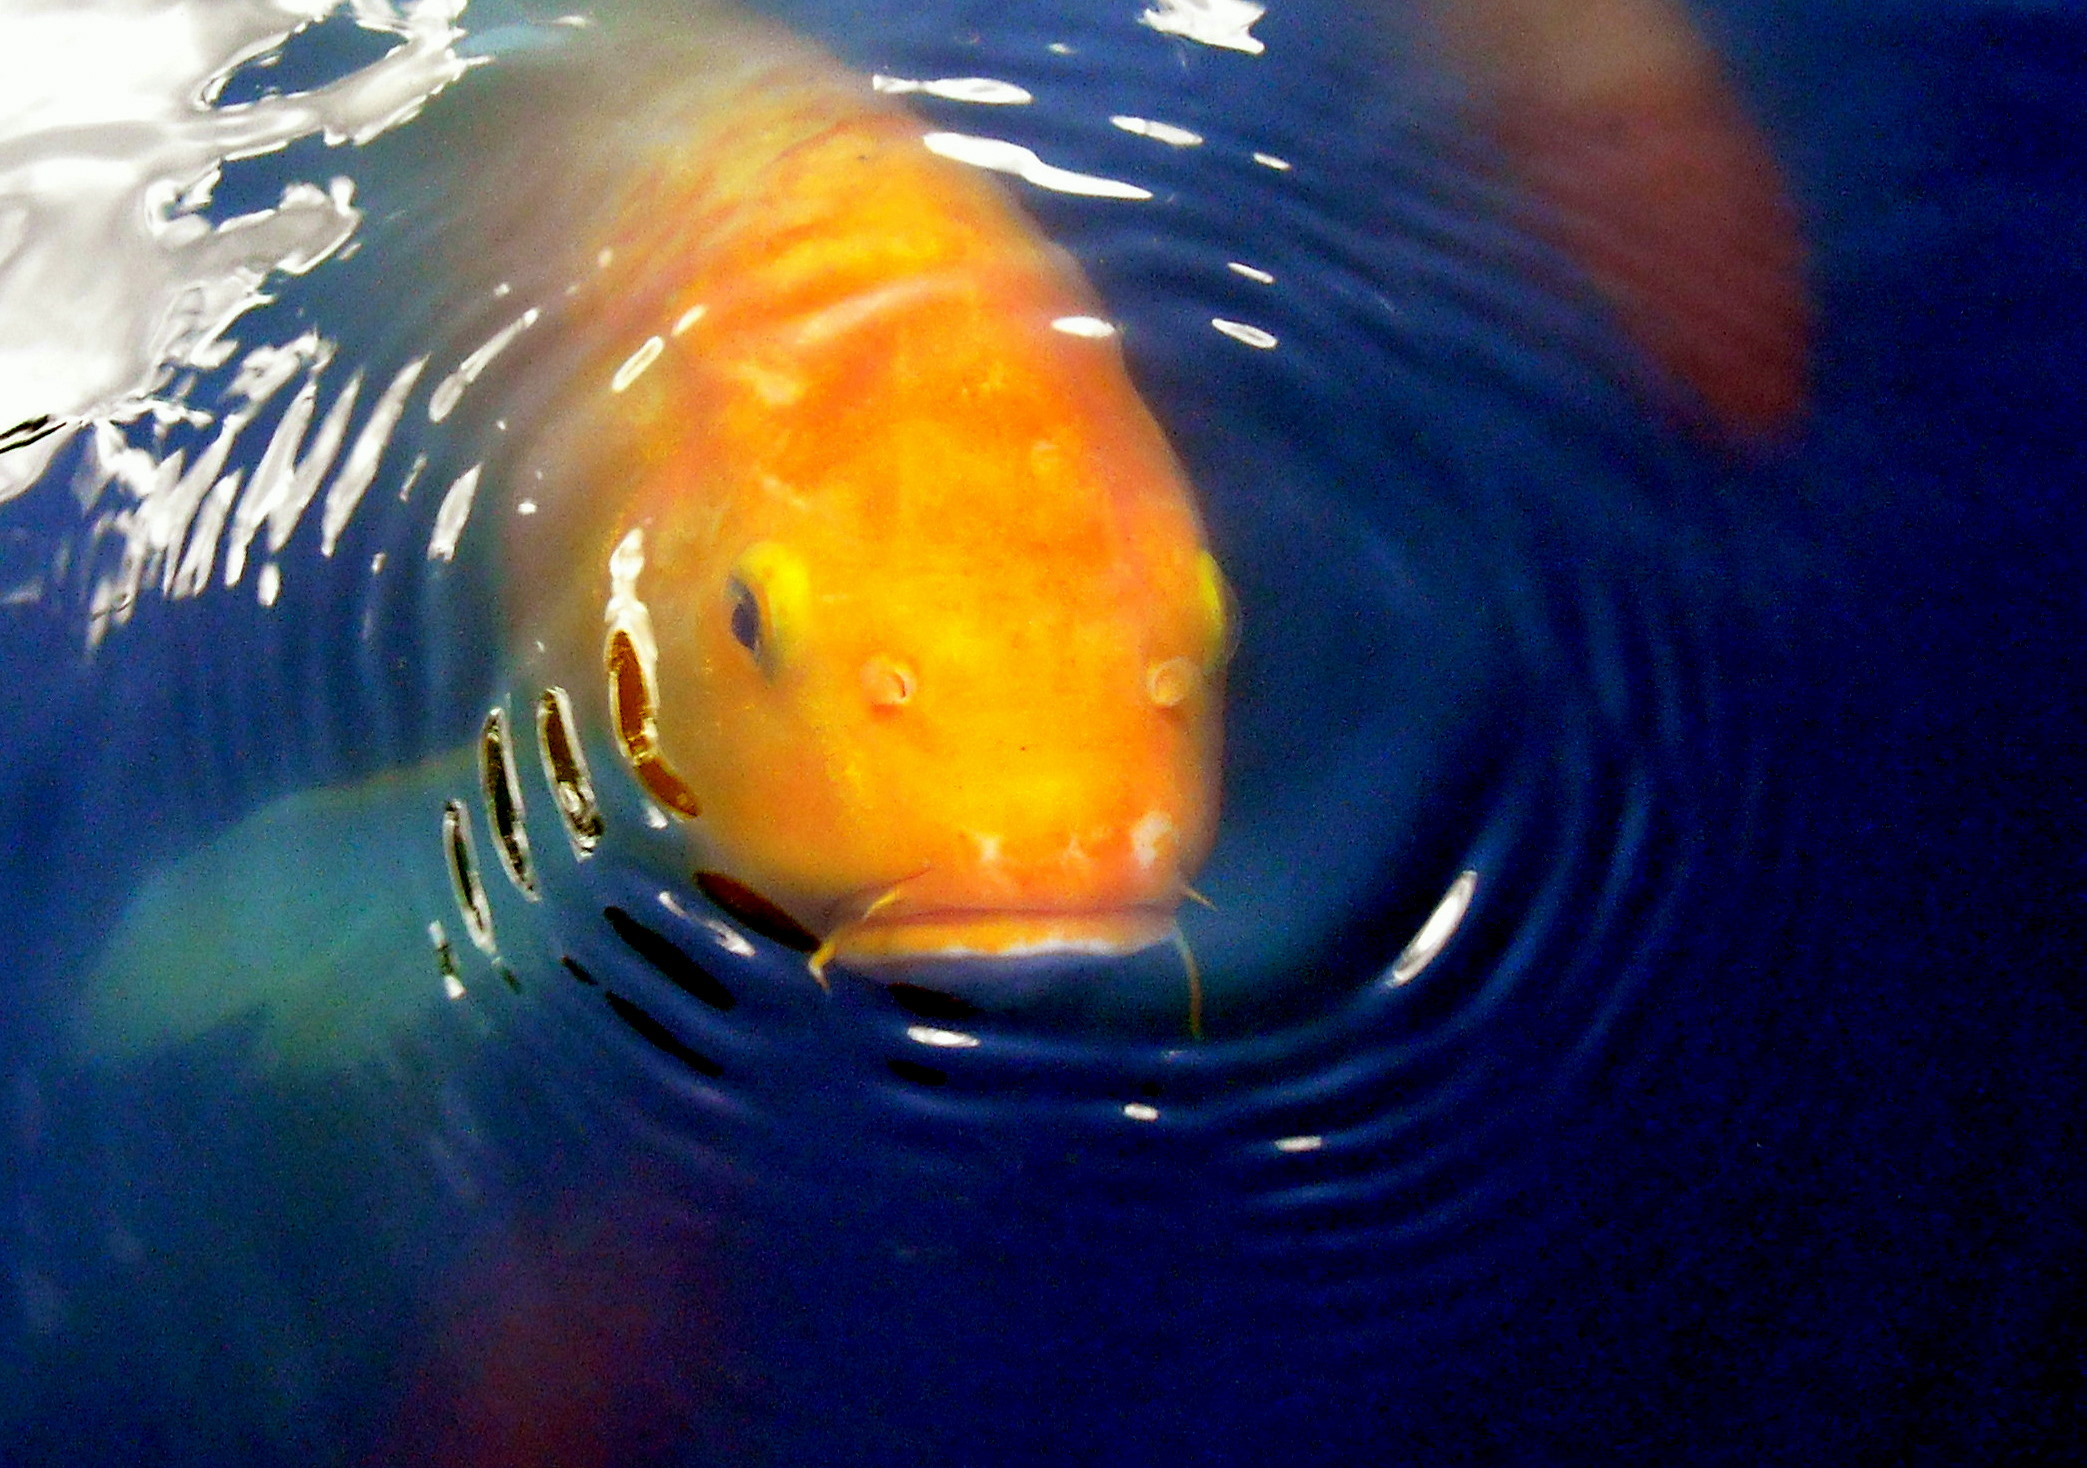 file koi what are you looking at jpg file koi what are you looking at